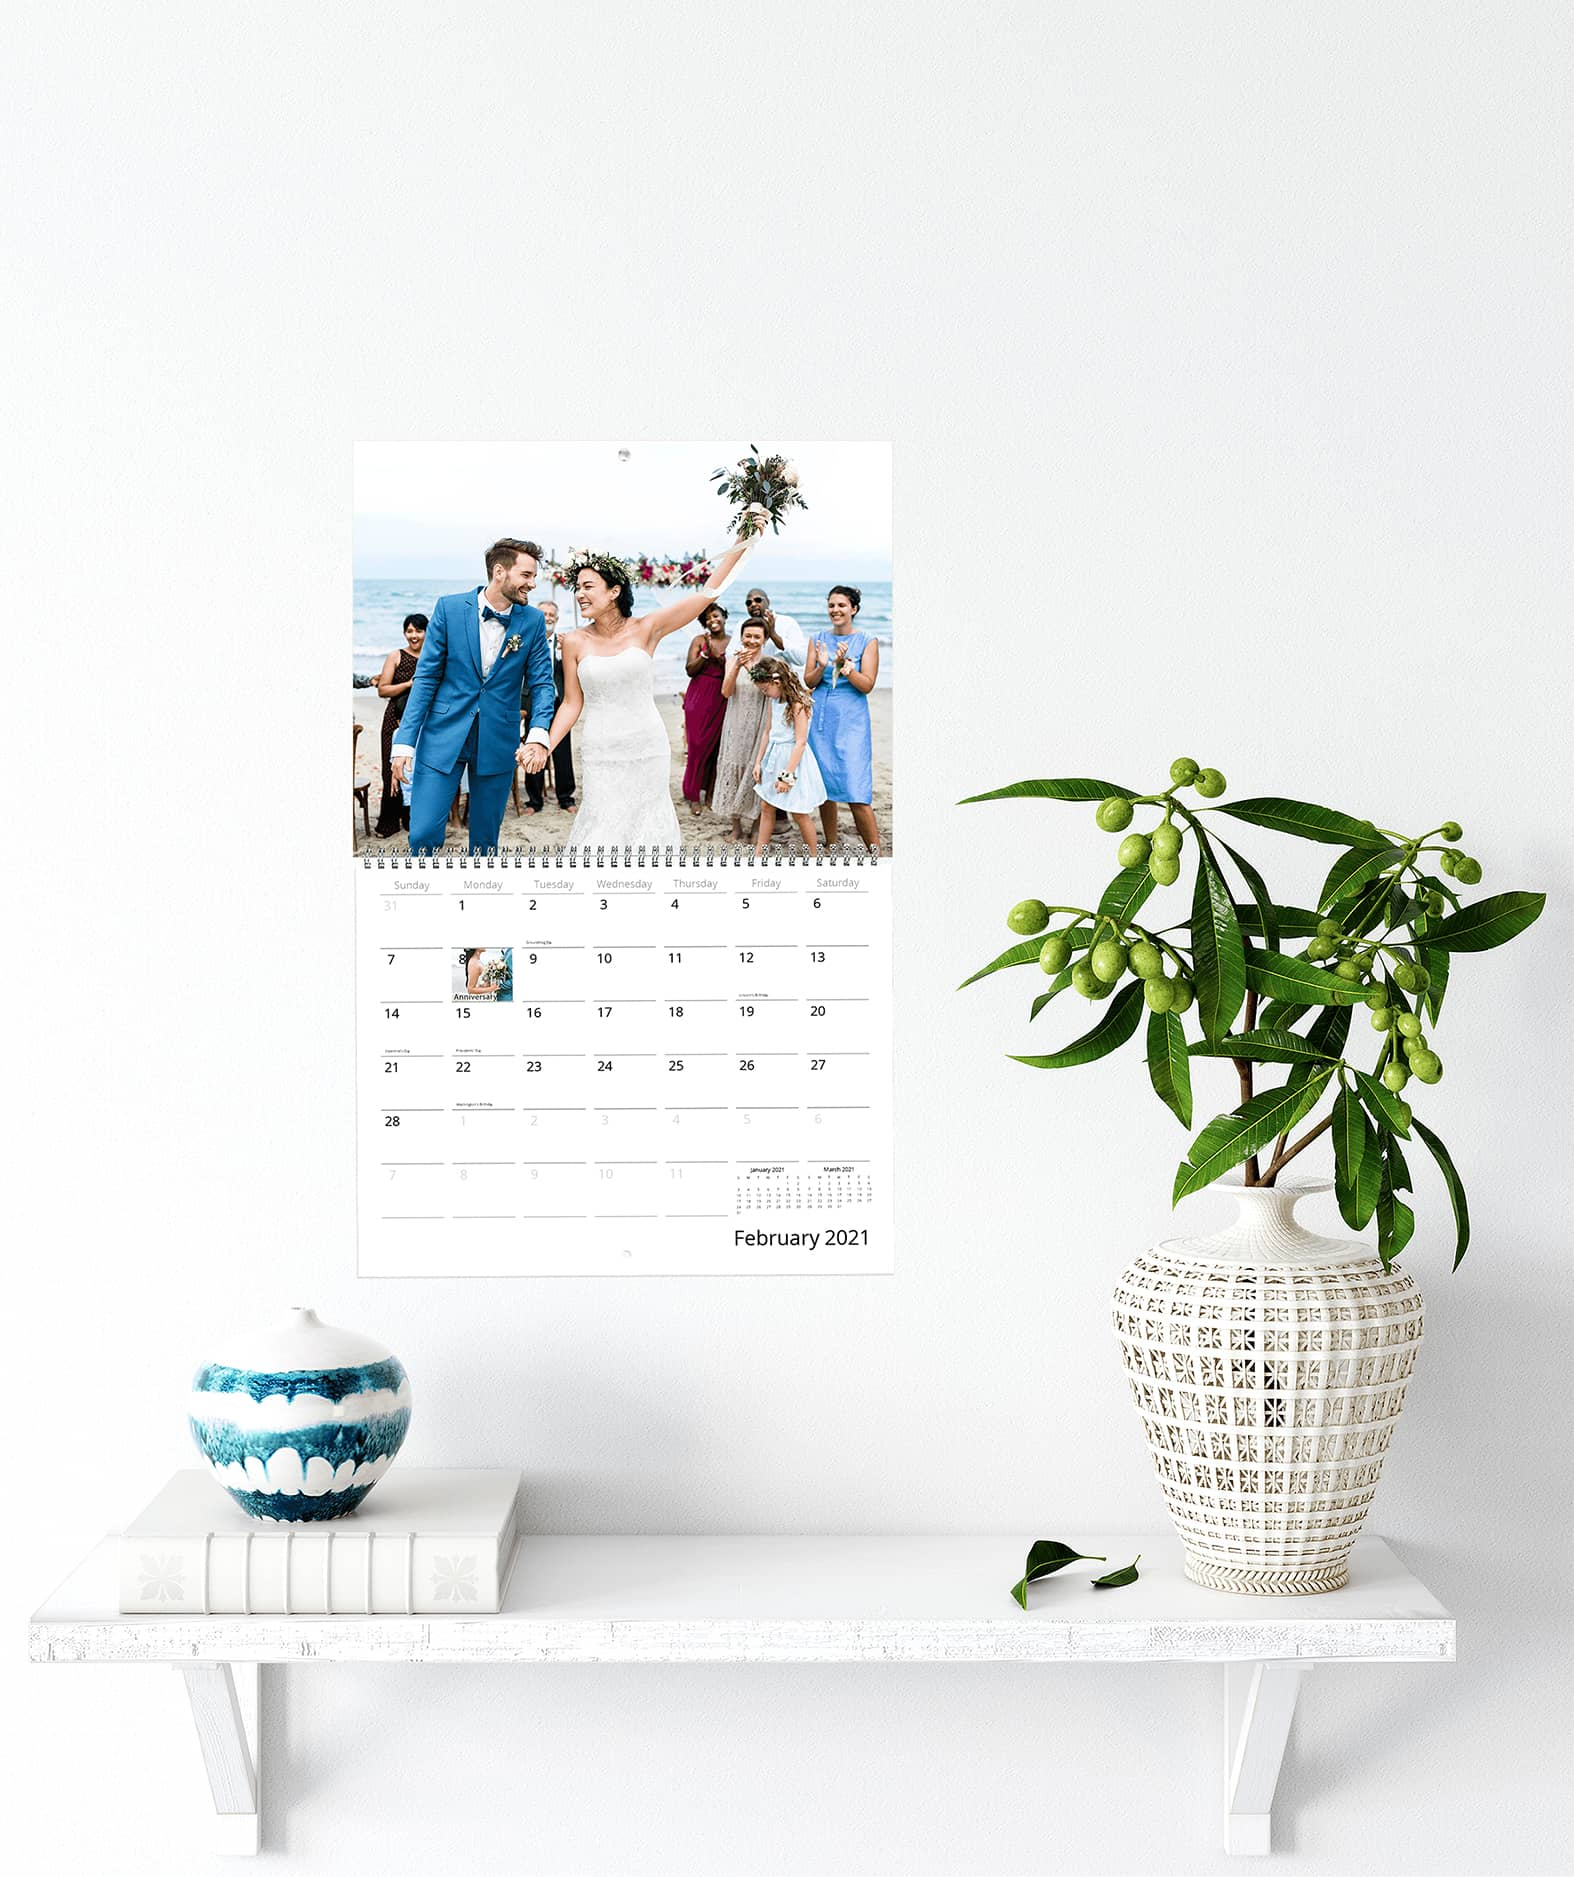 Create a personal calendar consisting of your favorite photos and images to hang on your wall